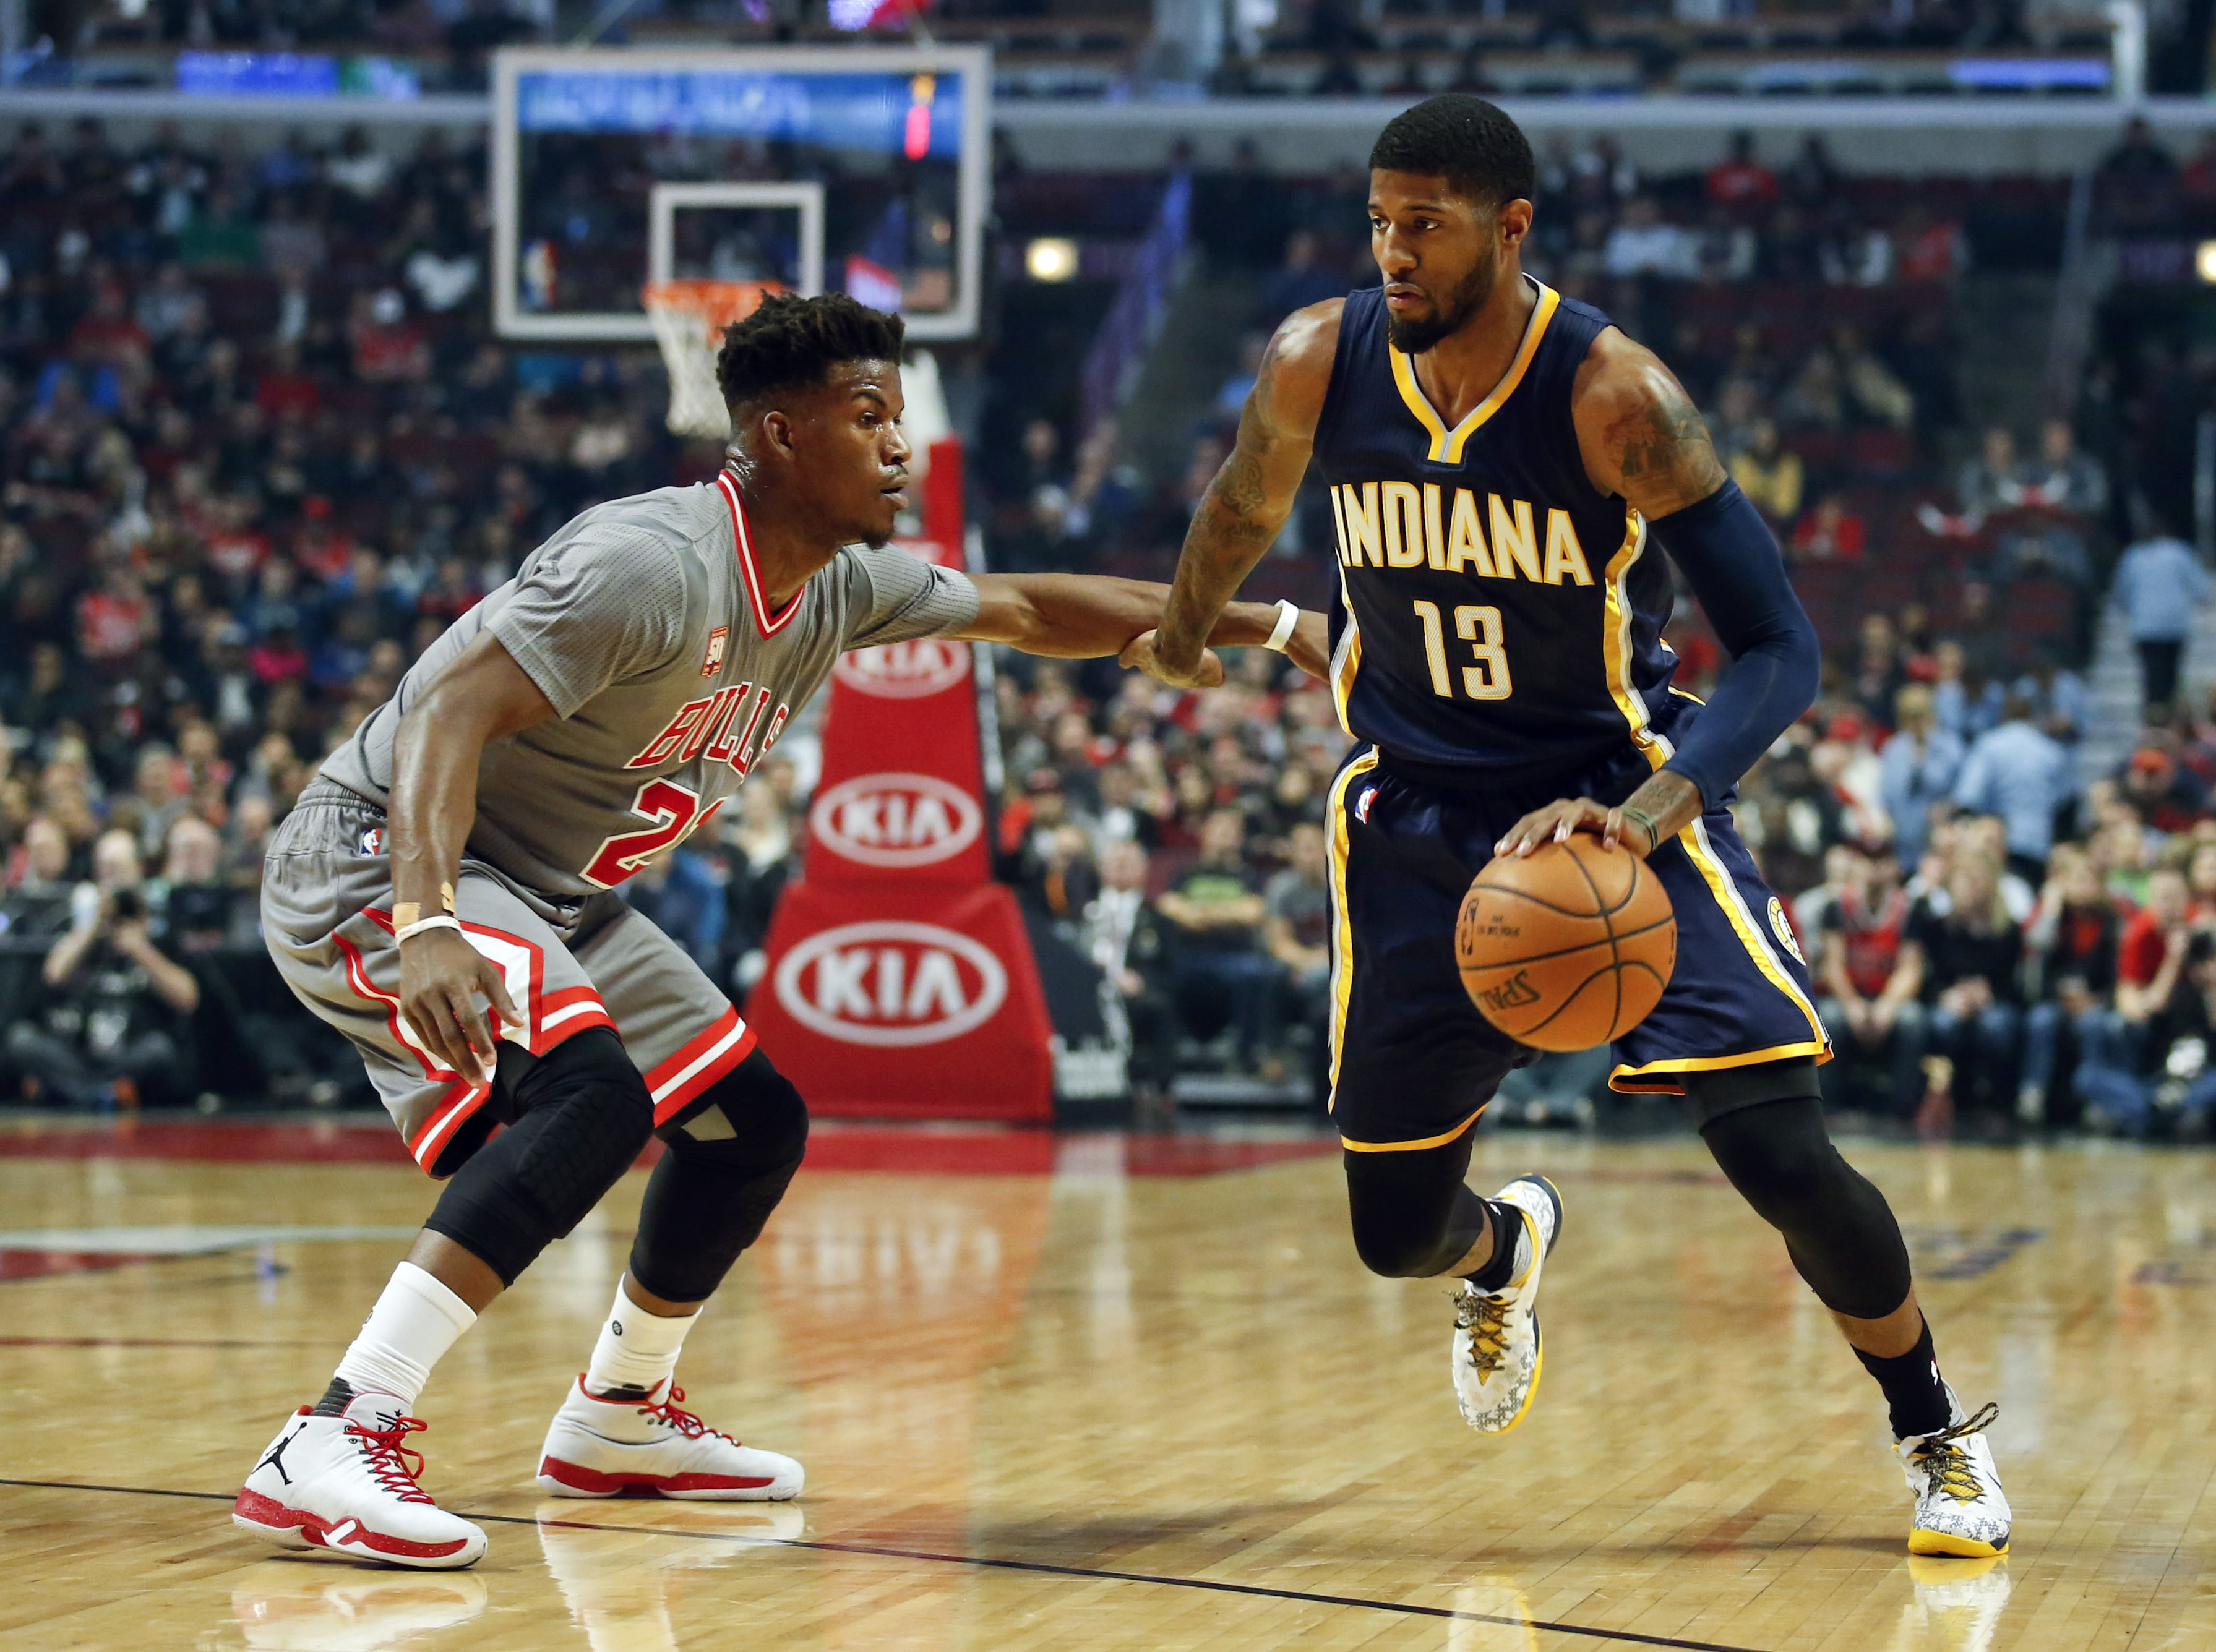 8930309-nba-indiana-pacers-at-chicago-bulls